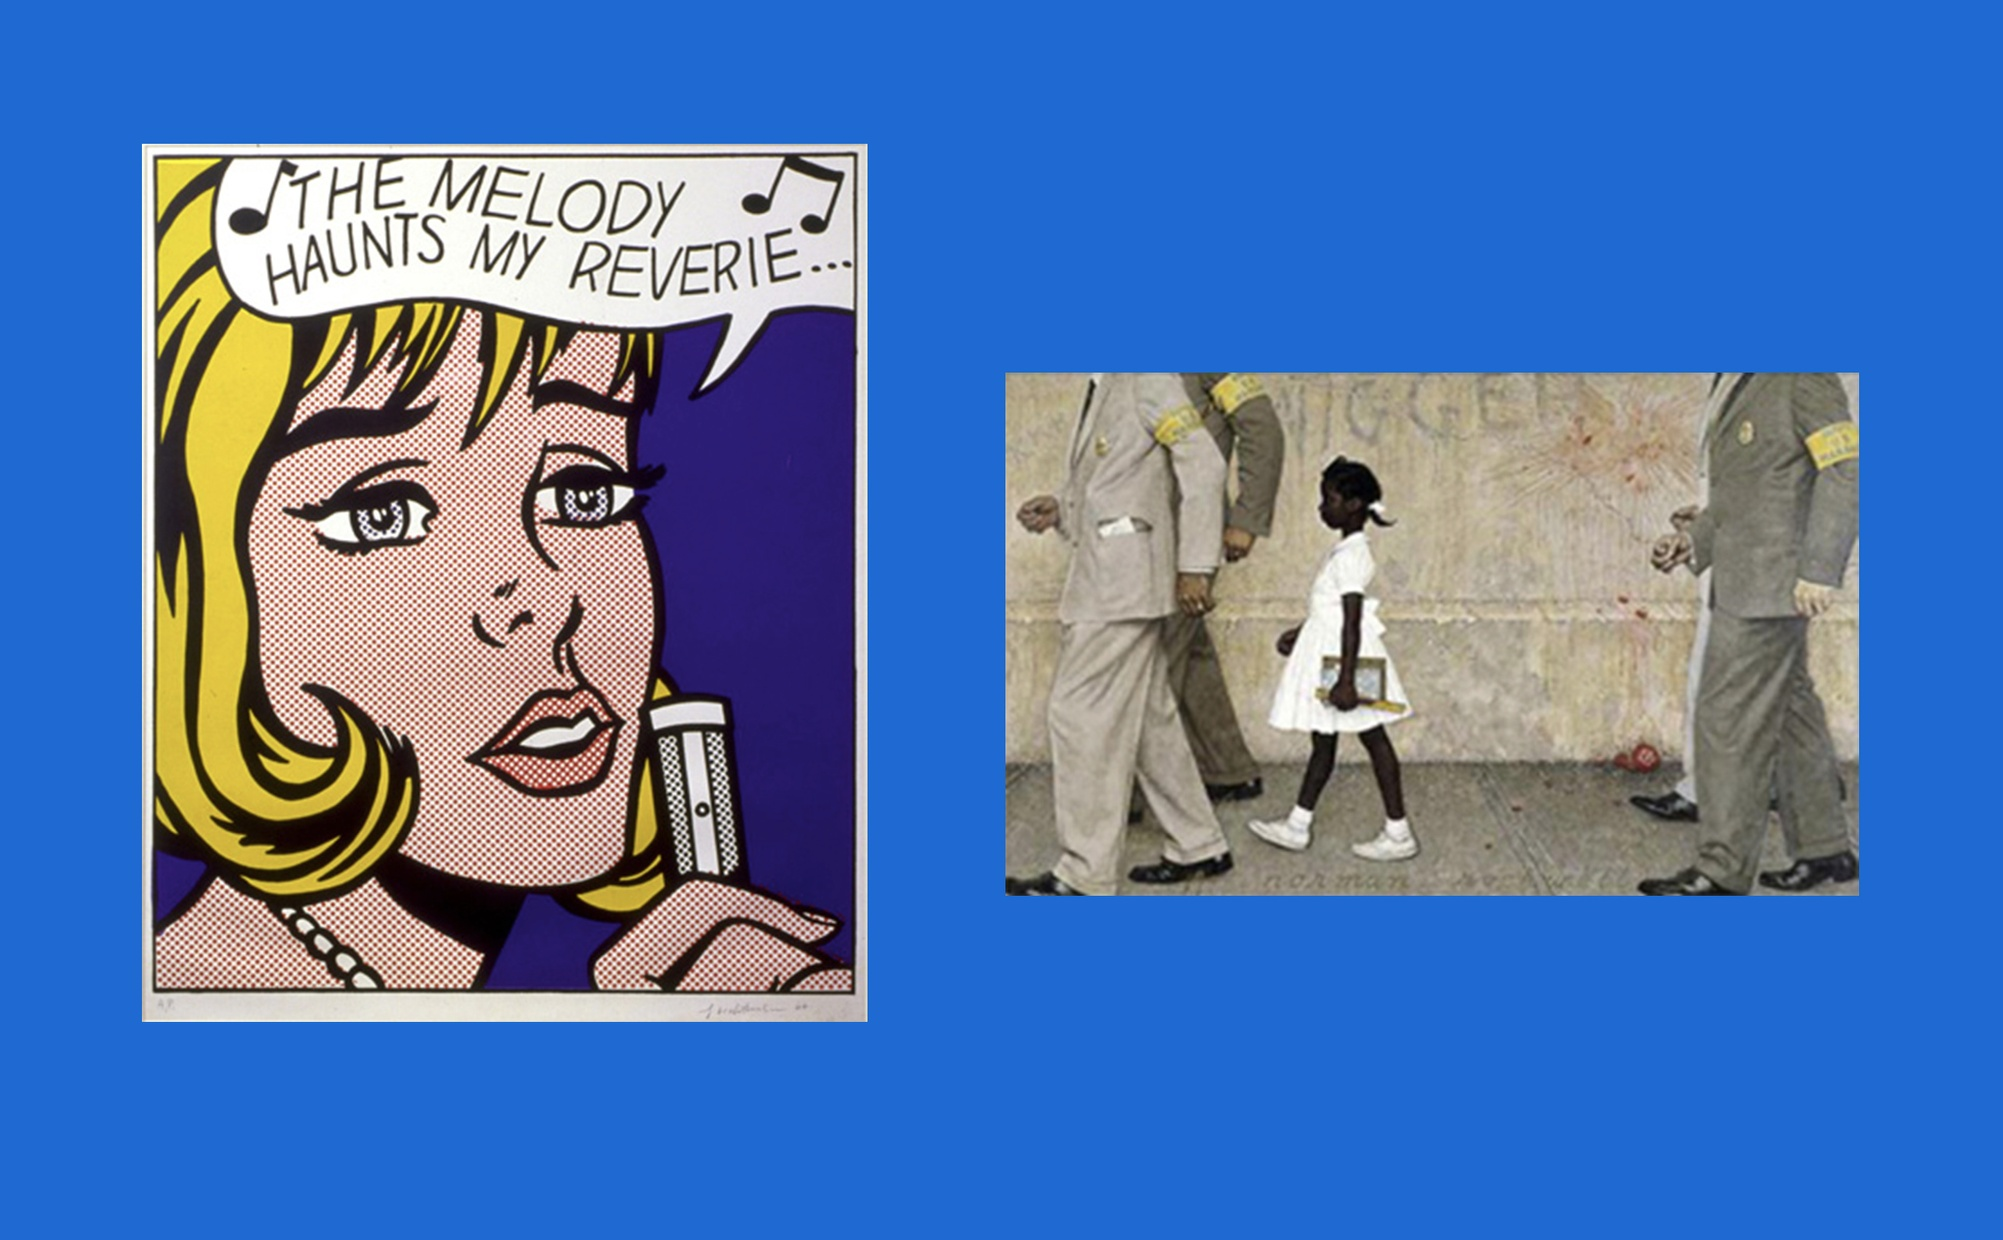 """Two images side by side, one image is a color print of a light-skinned woman with a speech bubble that reads """"THE MELODY HAUNTS MY REVIERIE…"""" and the other image is a painting of a young dark-skinned girl walking between a group of four adult men with graffiti on the wall that reads """"NIGGER."""""""